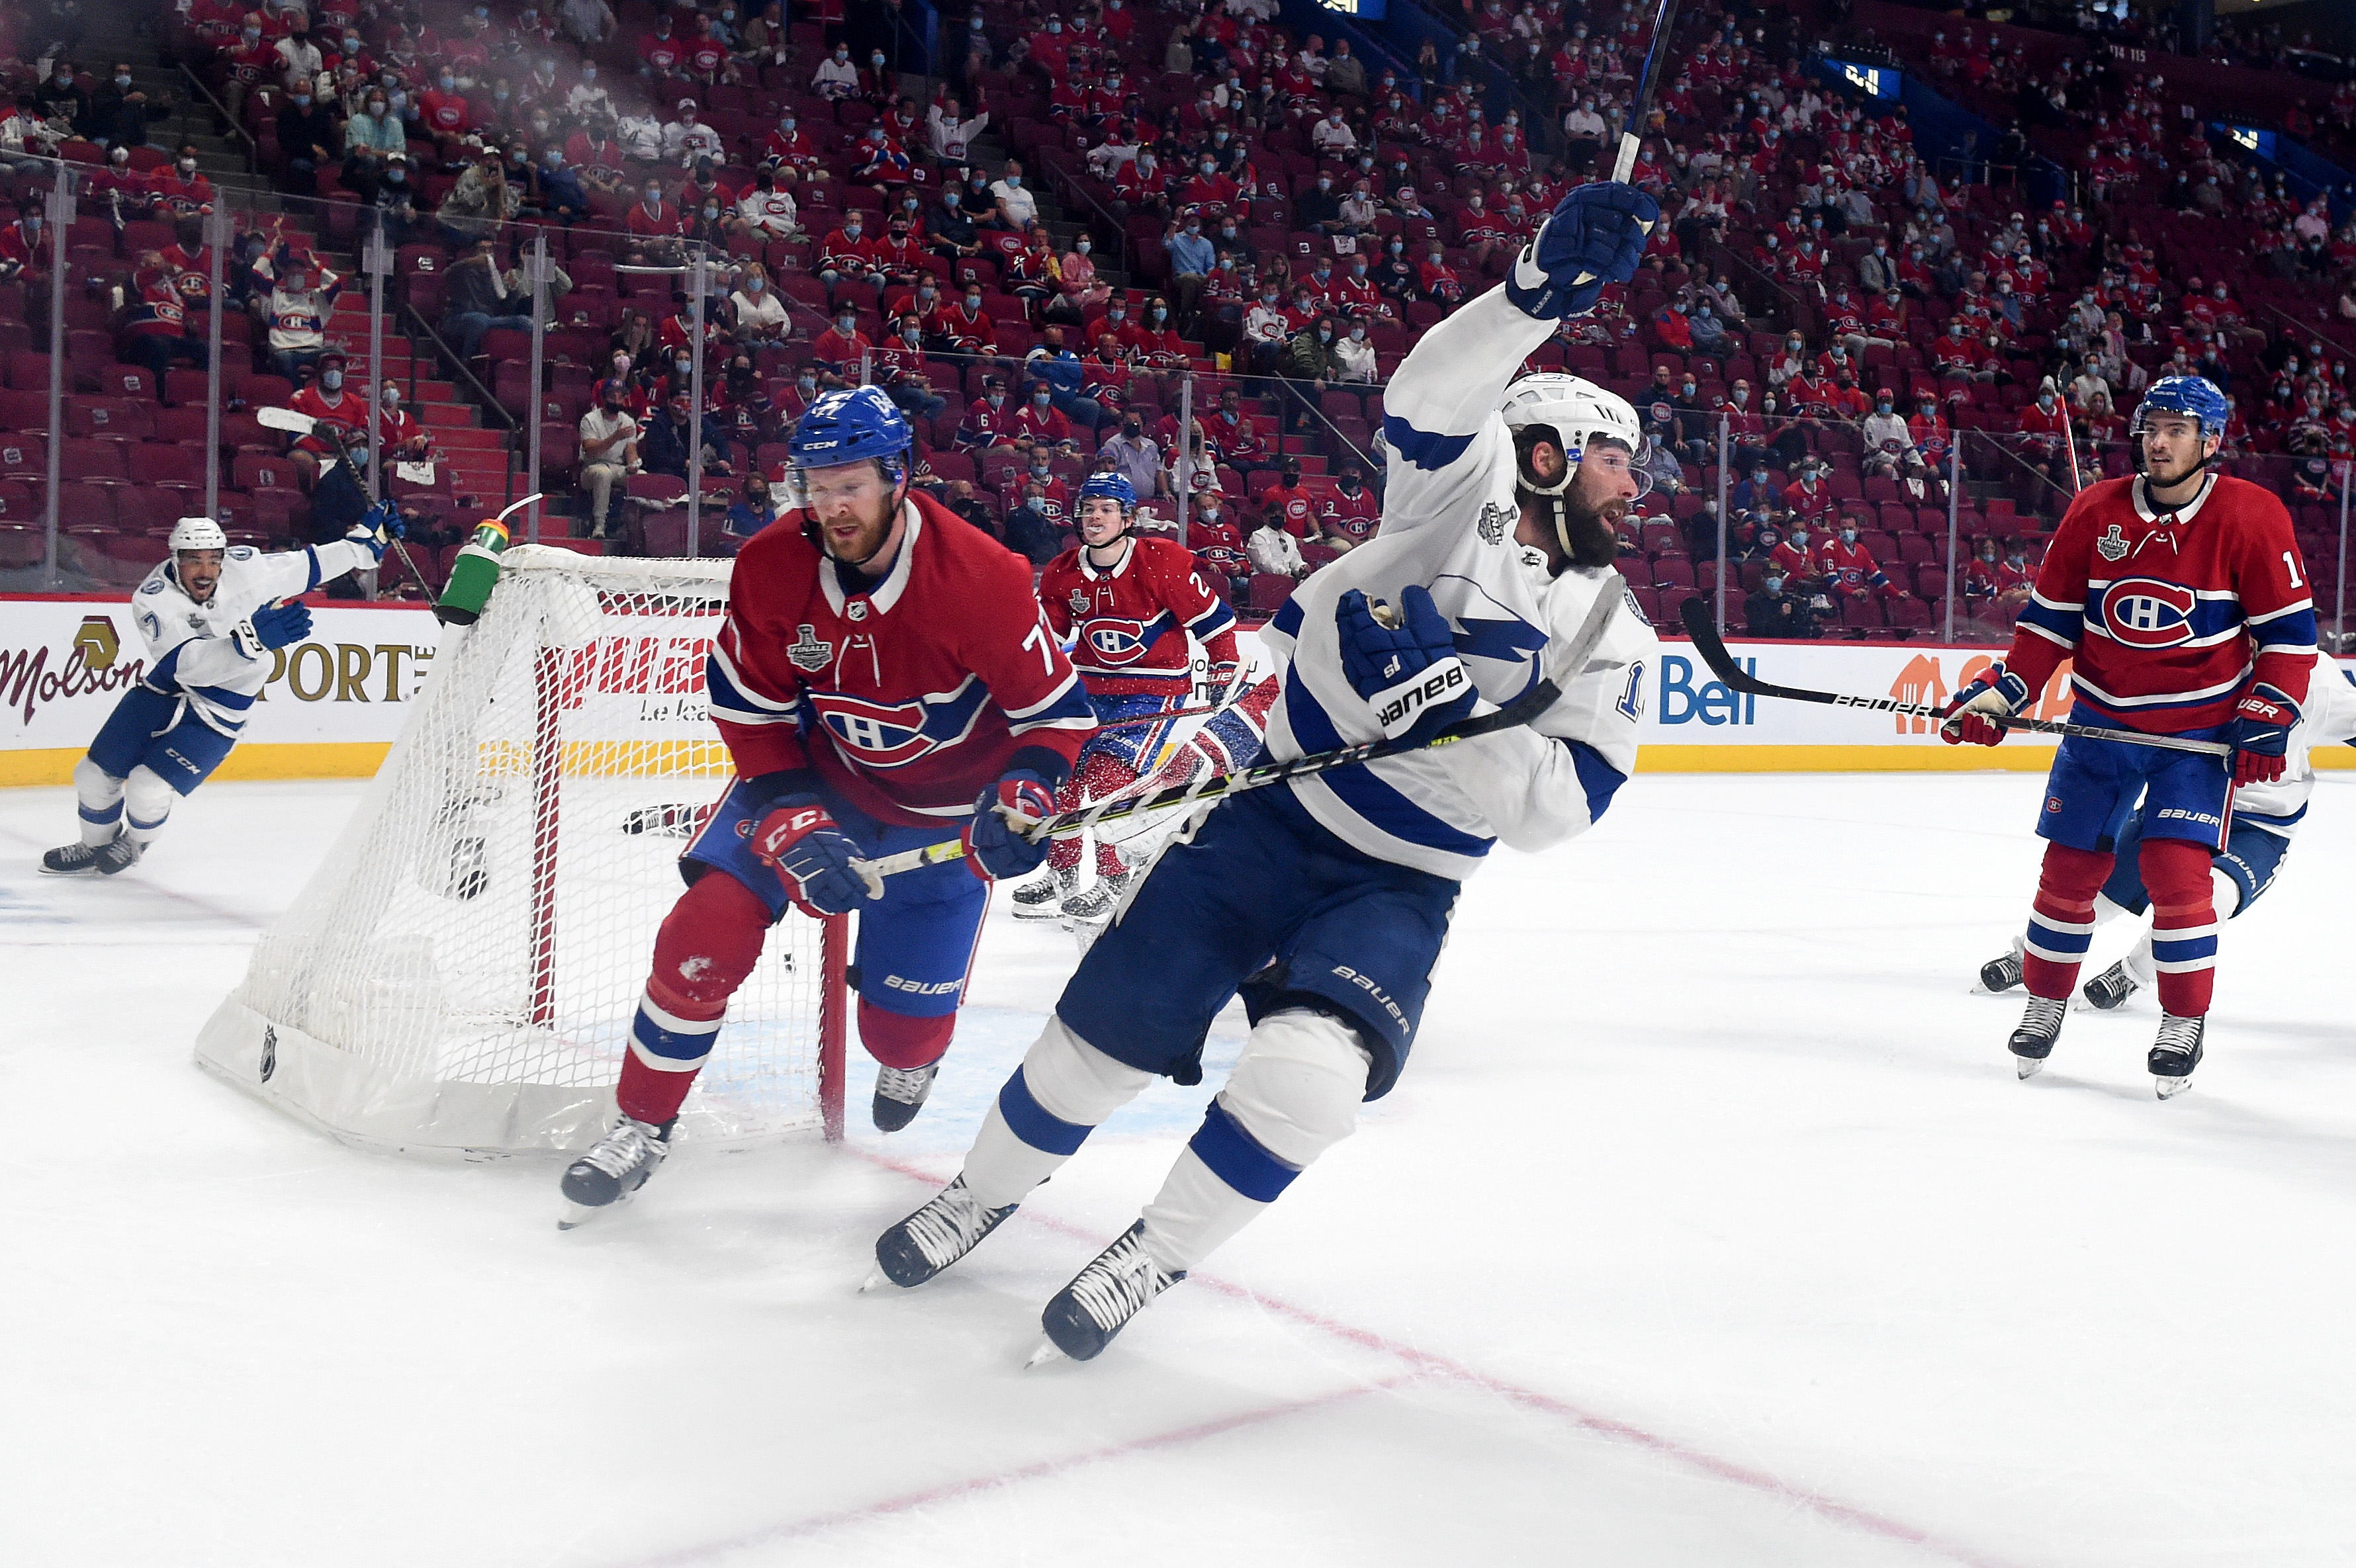 Pat Maroon of the Tampa Bay Lightning celebrates after scoring a goal past Carey Price of the Montreal Canadiens during the third period in Game Four of the 2021 NHL Stanley Cup Final at the Bell Centre on July 05, 2021 in Montreal, Quebec, Canada.